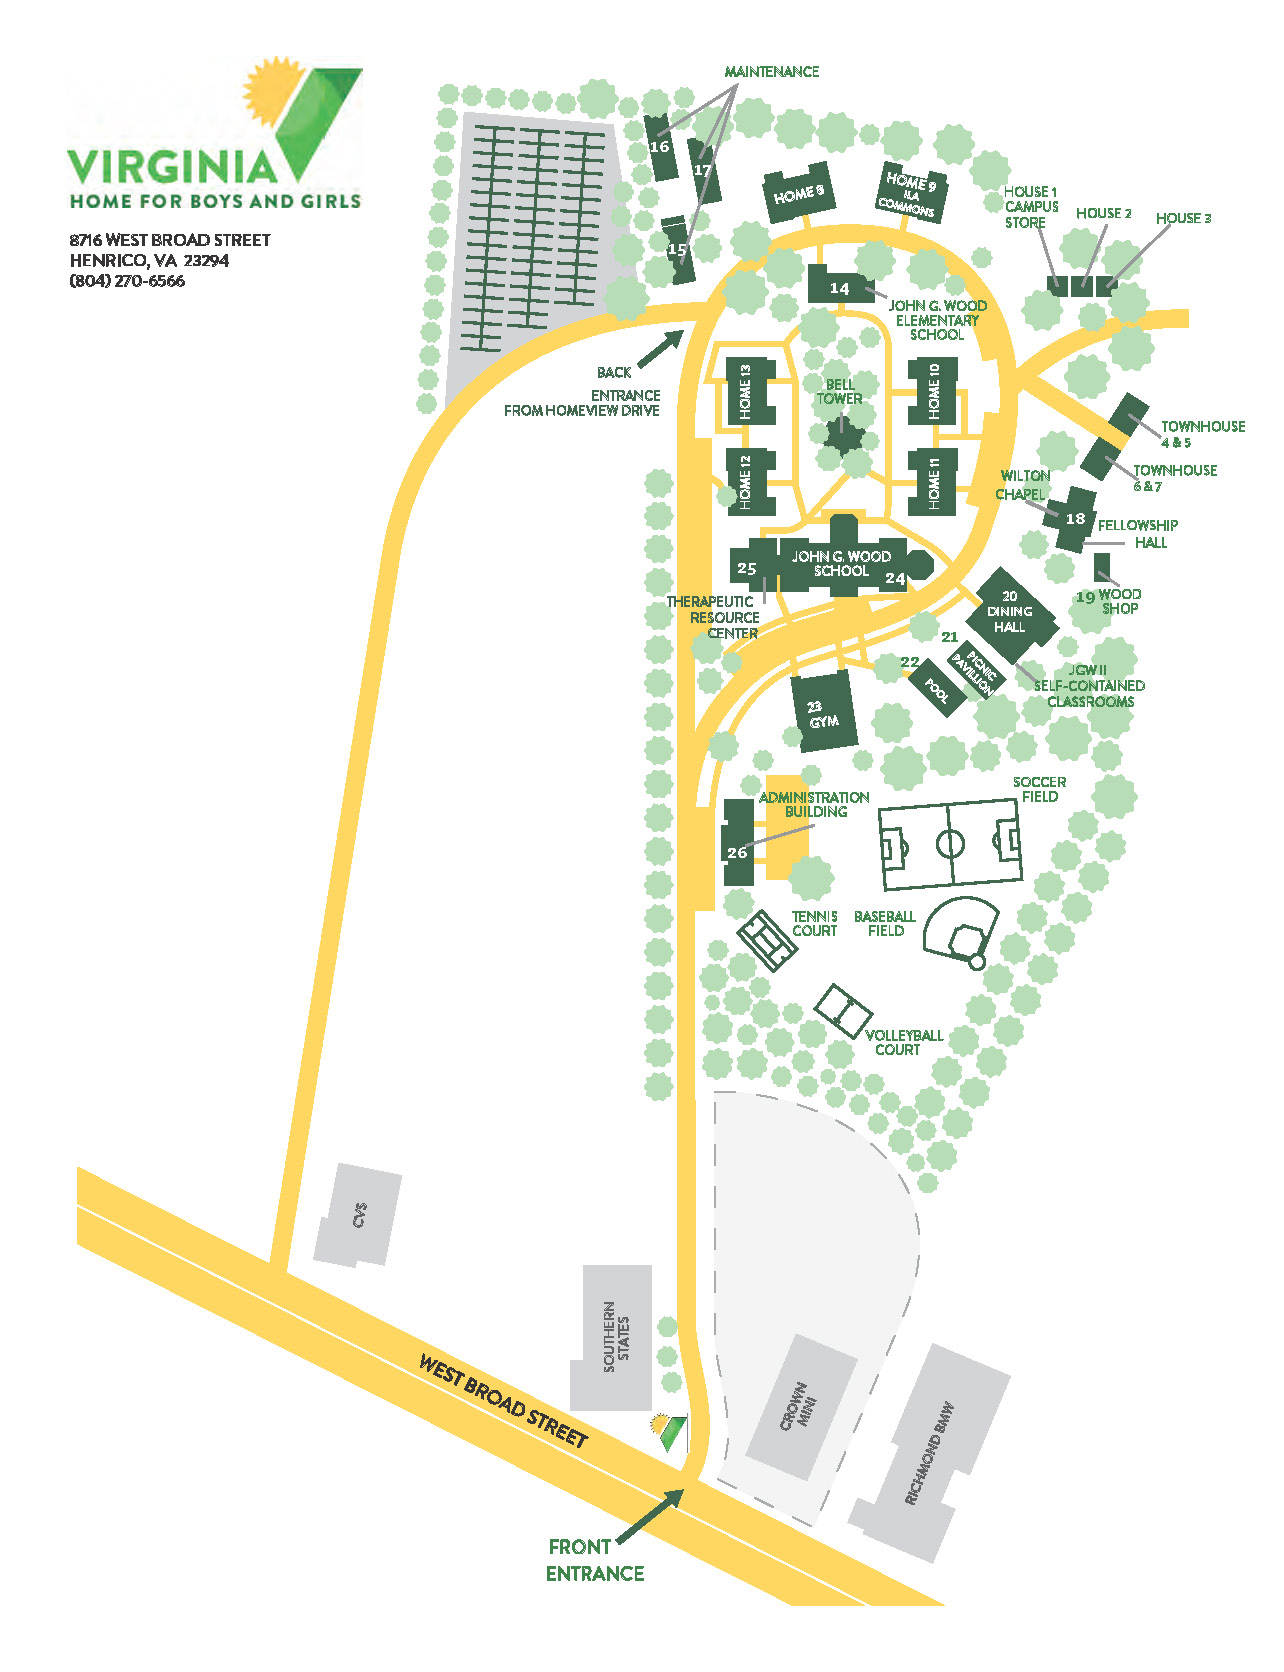 Map of VHBG Campus